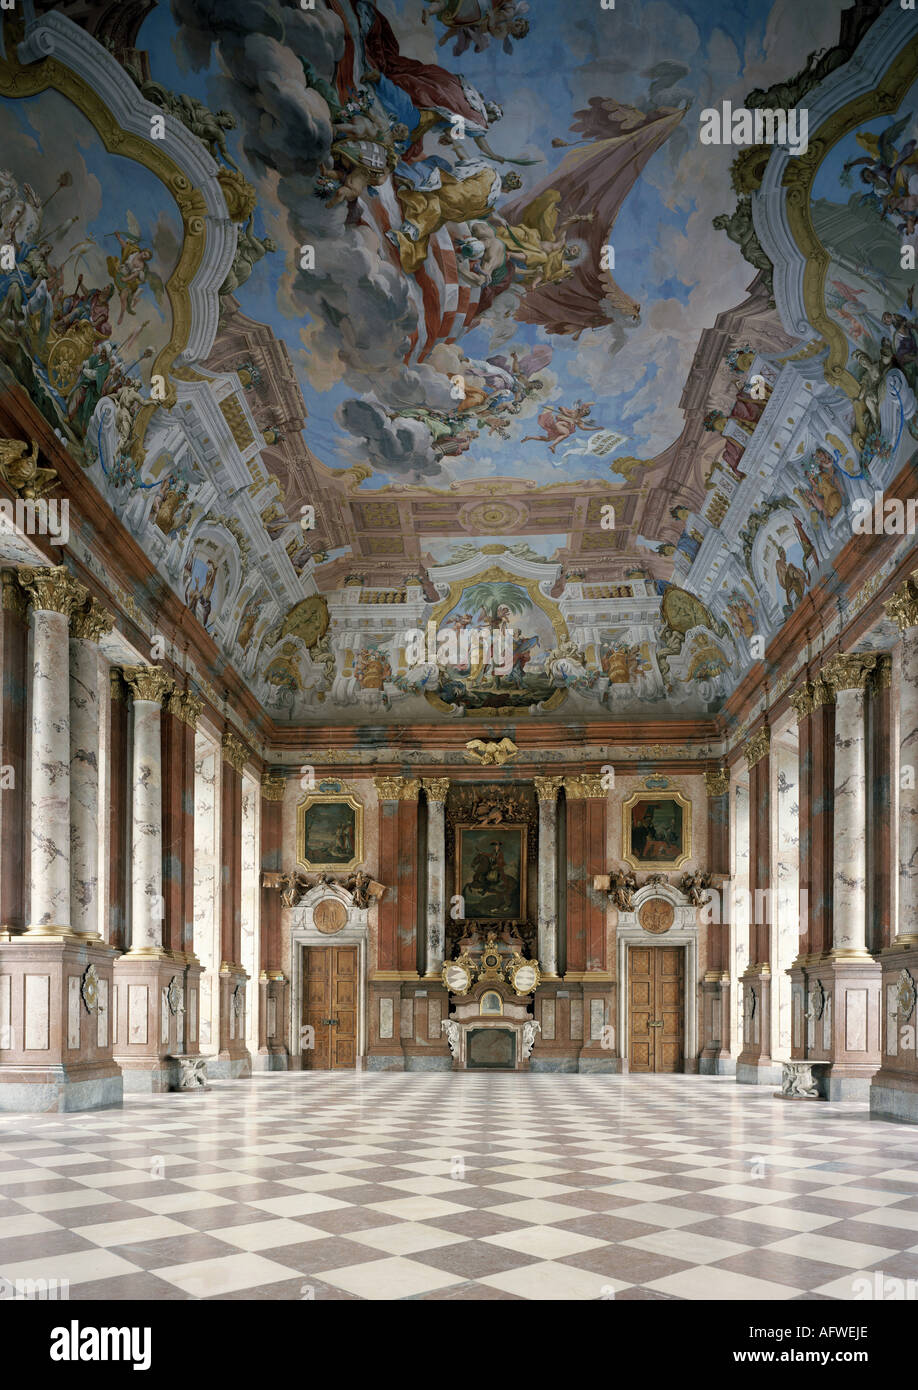 geography/travel, Austria, Upper Austria, Sankt Florian, churches and convents, Sankt Florian monastery, interior view, marble hall, 1686 - 1708, built by Carlo Antonio Carlone, , Additional-Rights-Clearance-Info-Not-Available - Stock Image